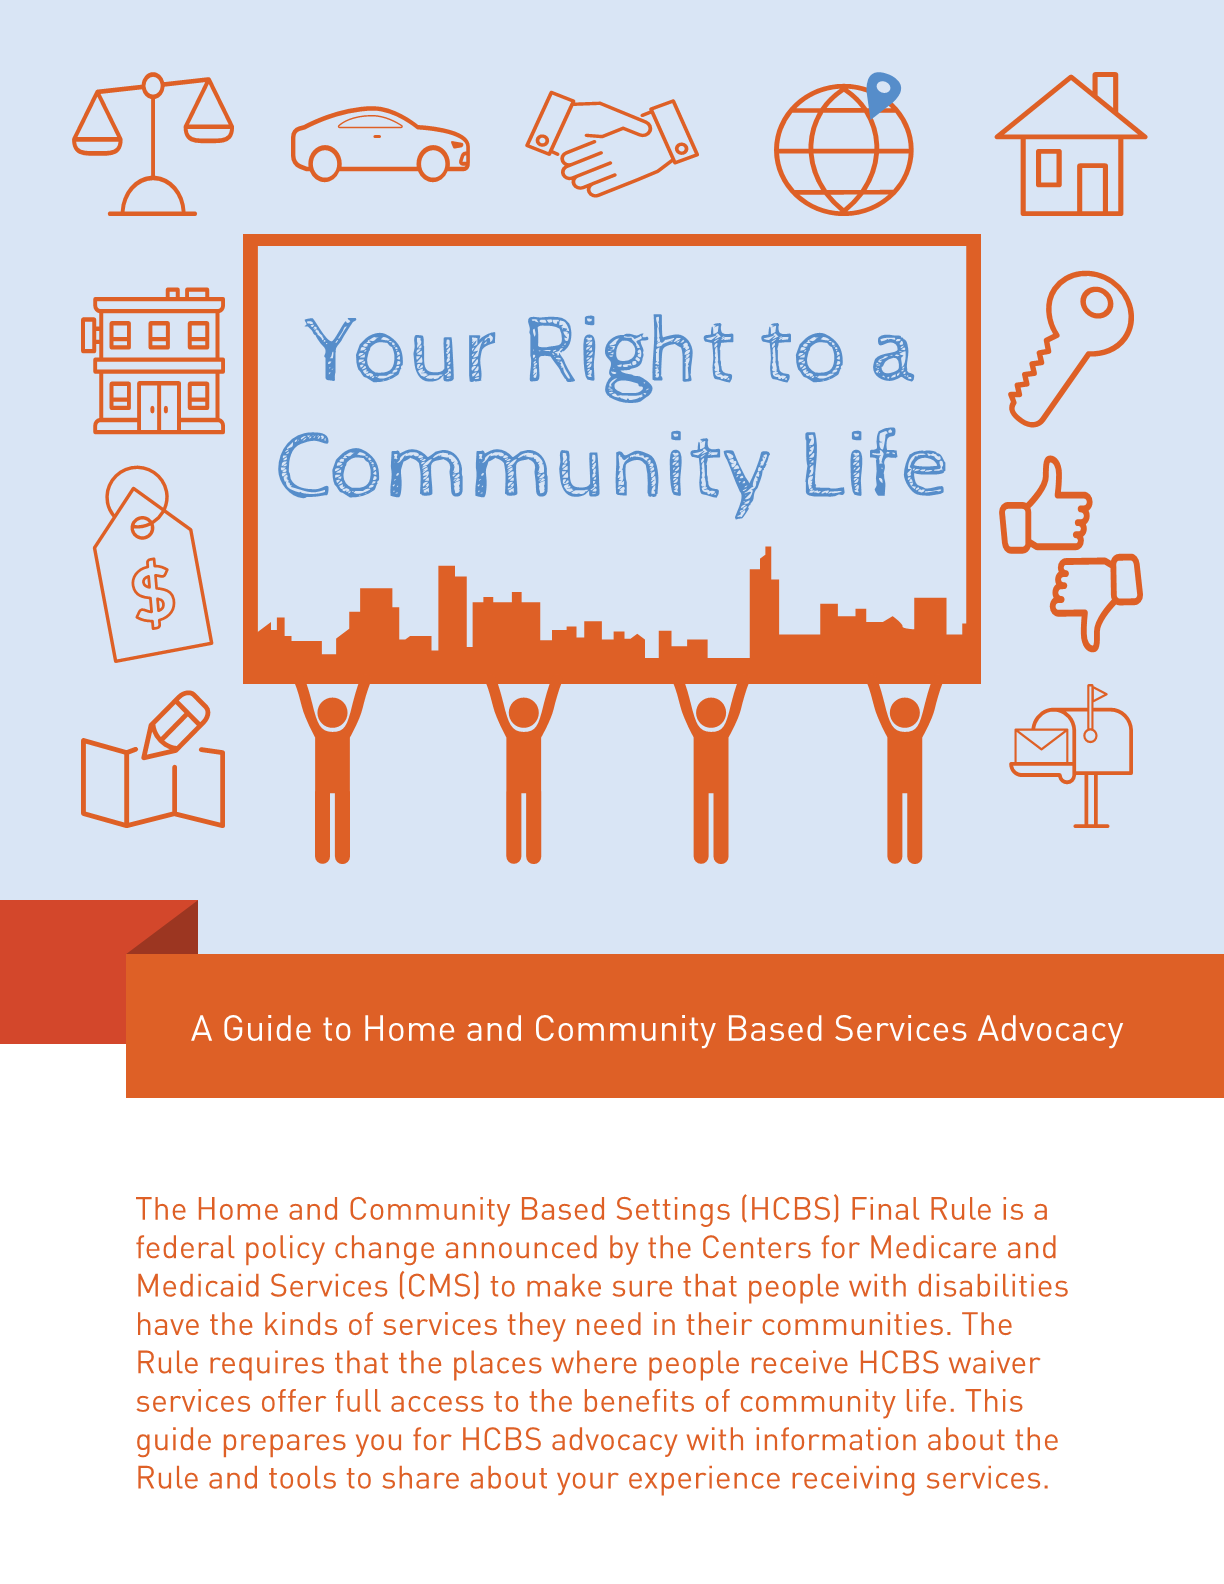 Your Right to a Community Life: A Guide to Home and Community Based Services Advocacy